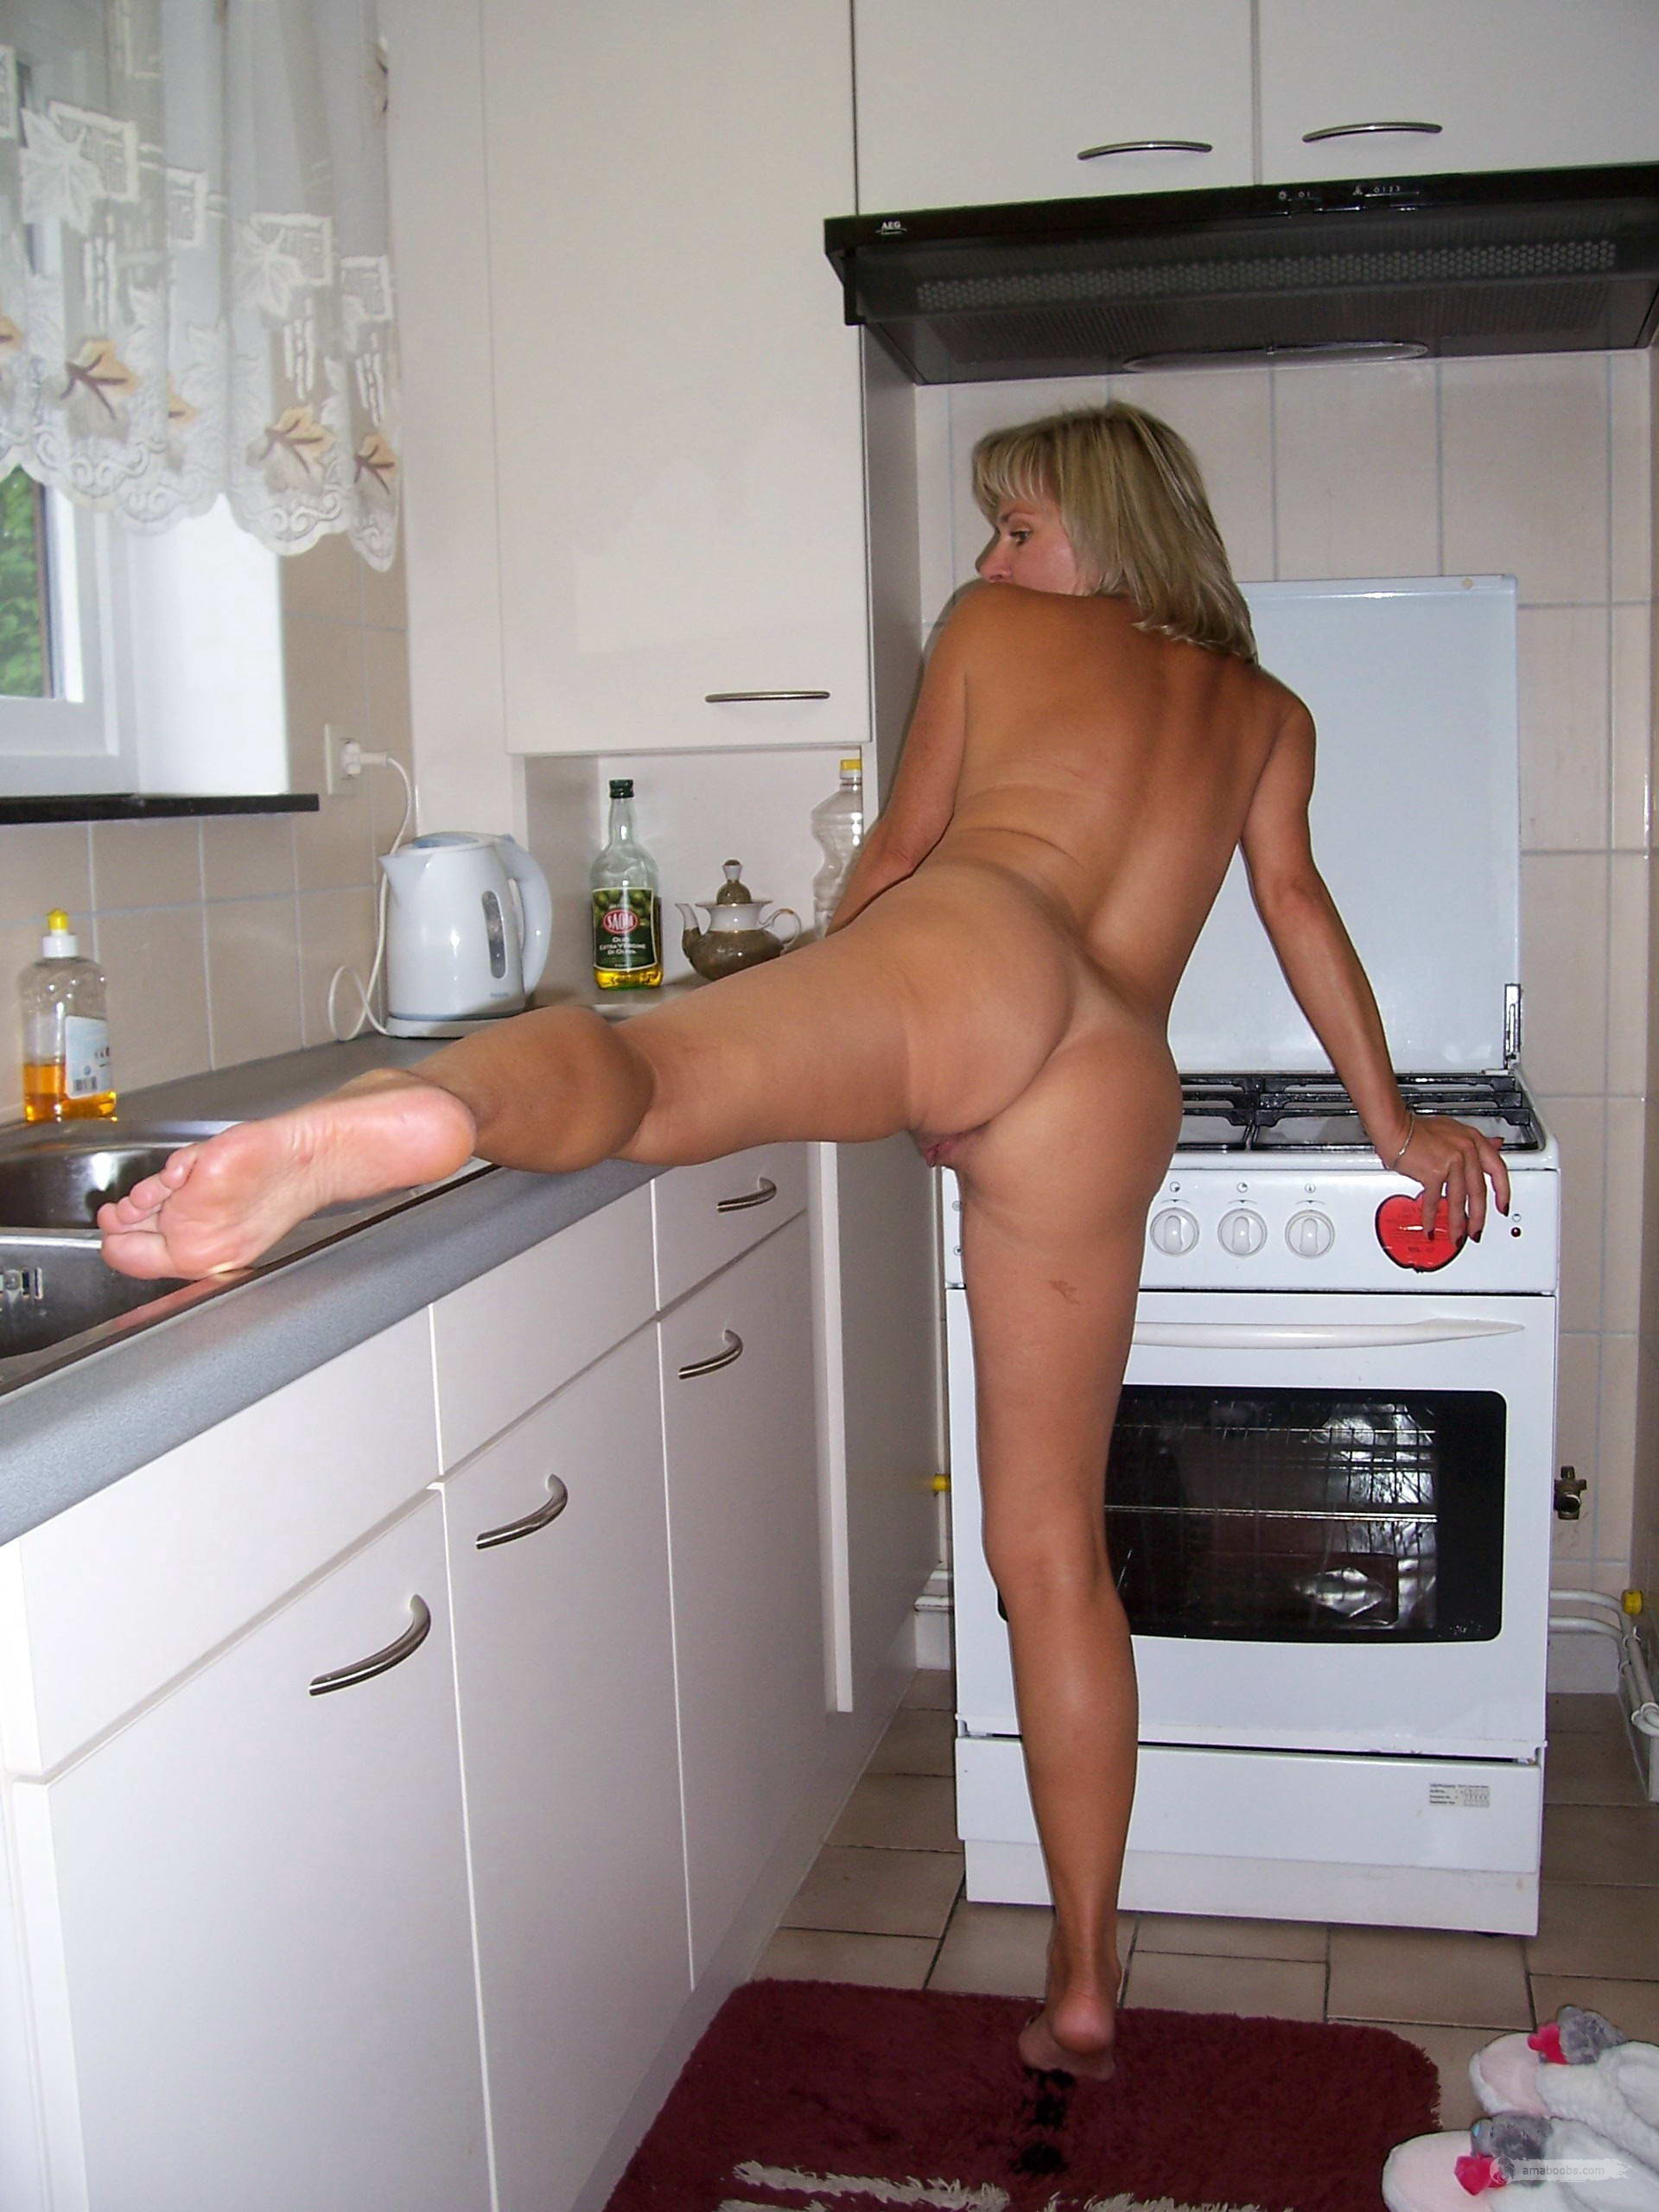 Nude in kitchen pics-6858